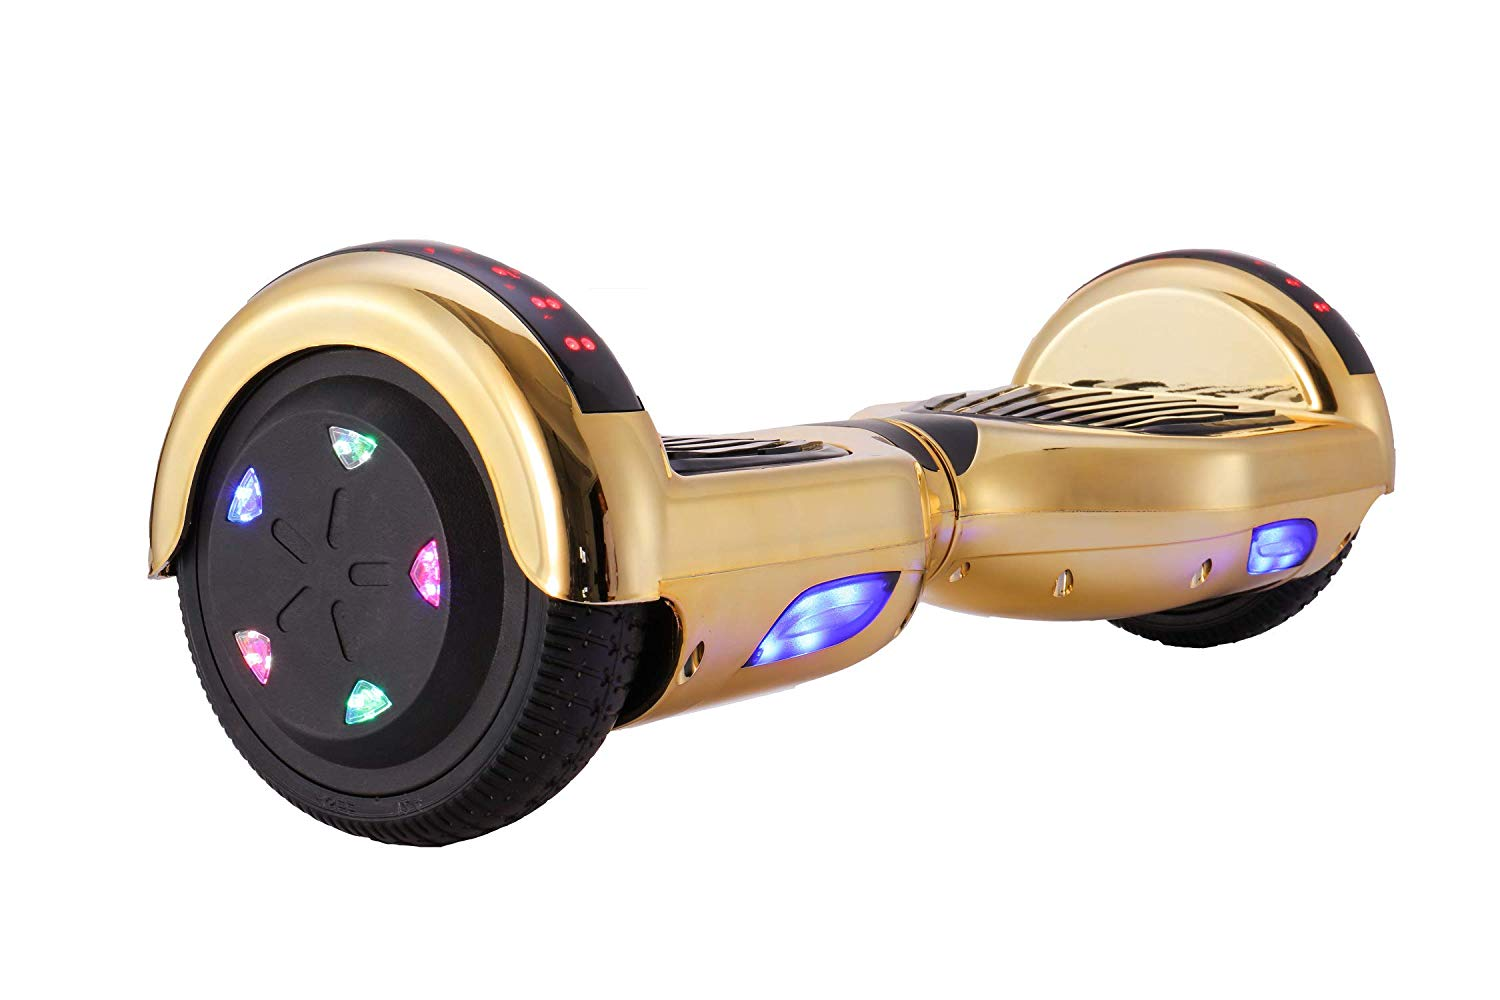 CXM2018 Bluetooth Enabled 6.5 inch Self Balancing Hoverboard with Built-in Wireless Speaker,250Watt Dual Motors and LED Side Lights for Kids and Adults,UL 2272 Certified Electric Scooter - Cheap Hoverboards under 250$